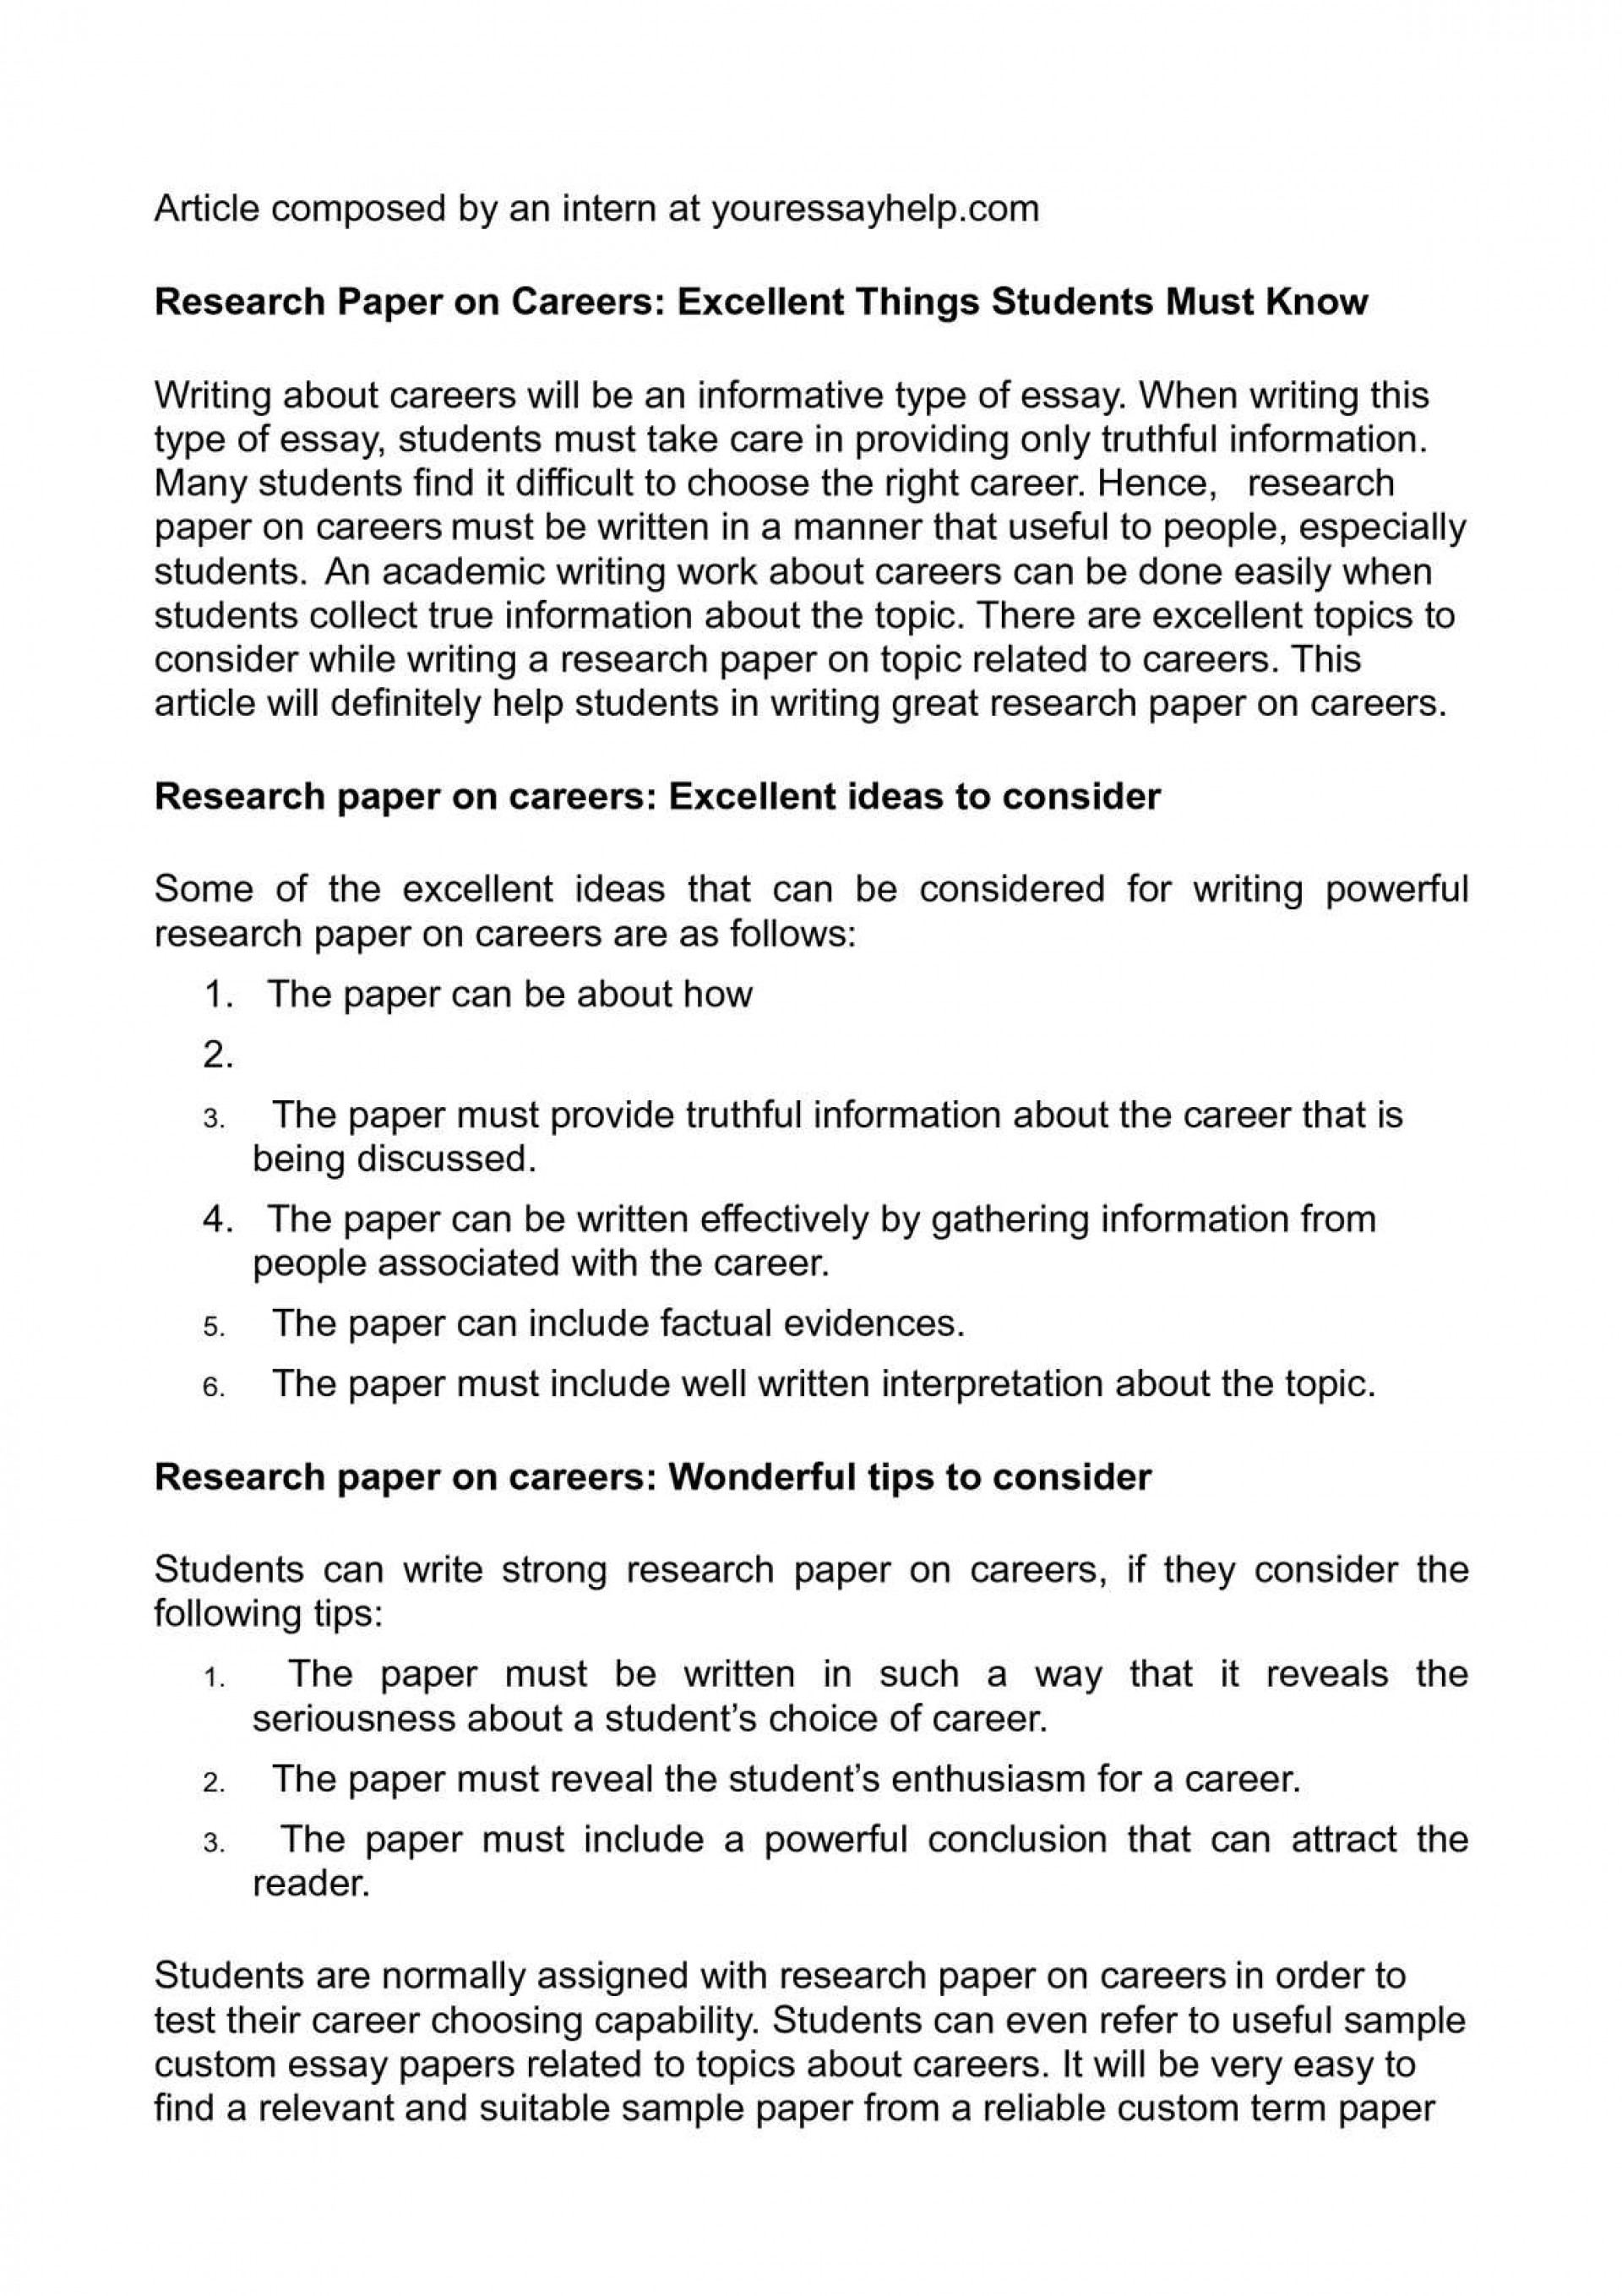 016 P1 Research Paper Career Related Singular Topics Development 1920